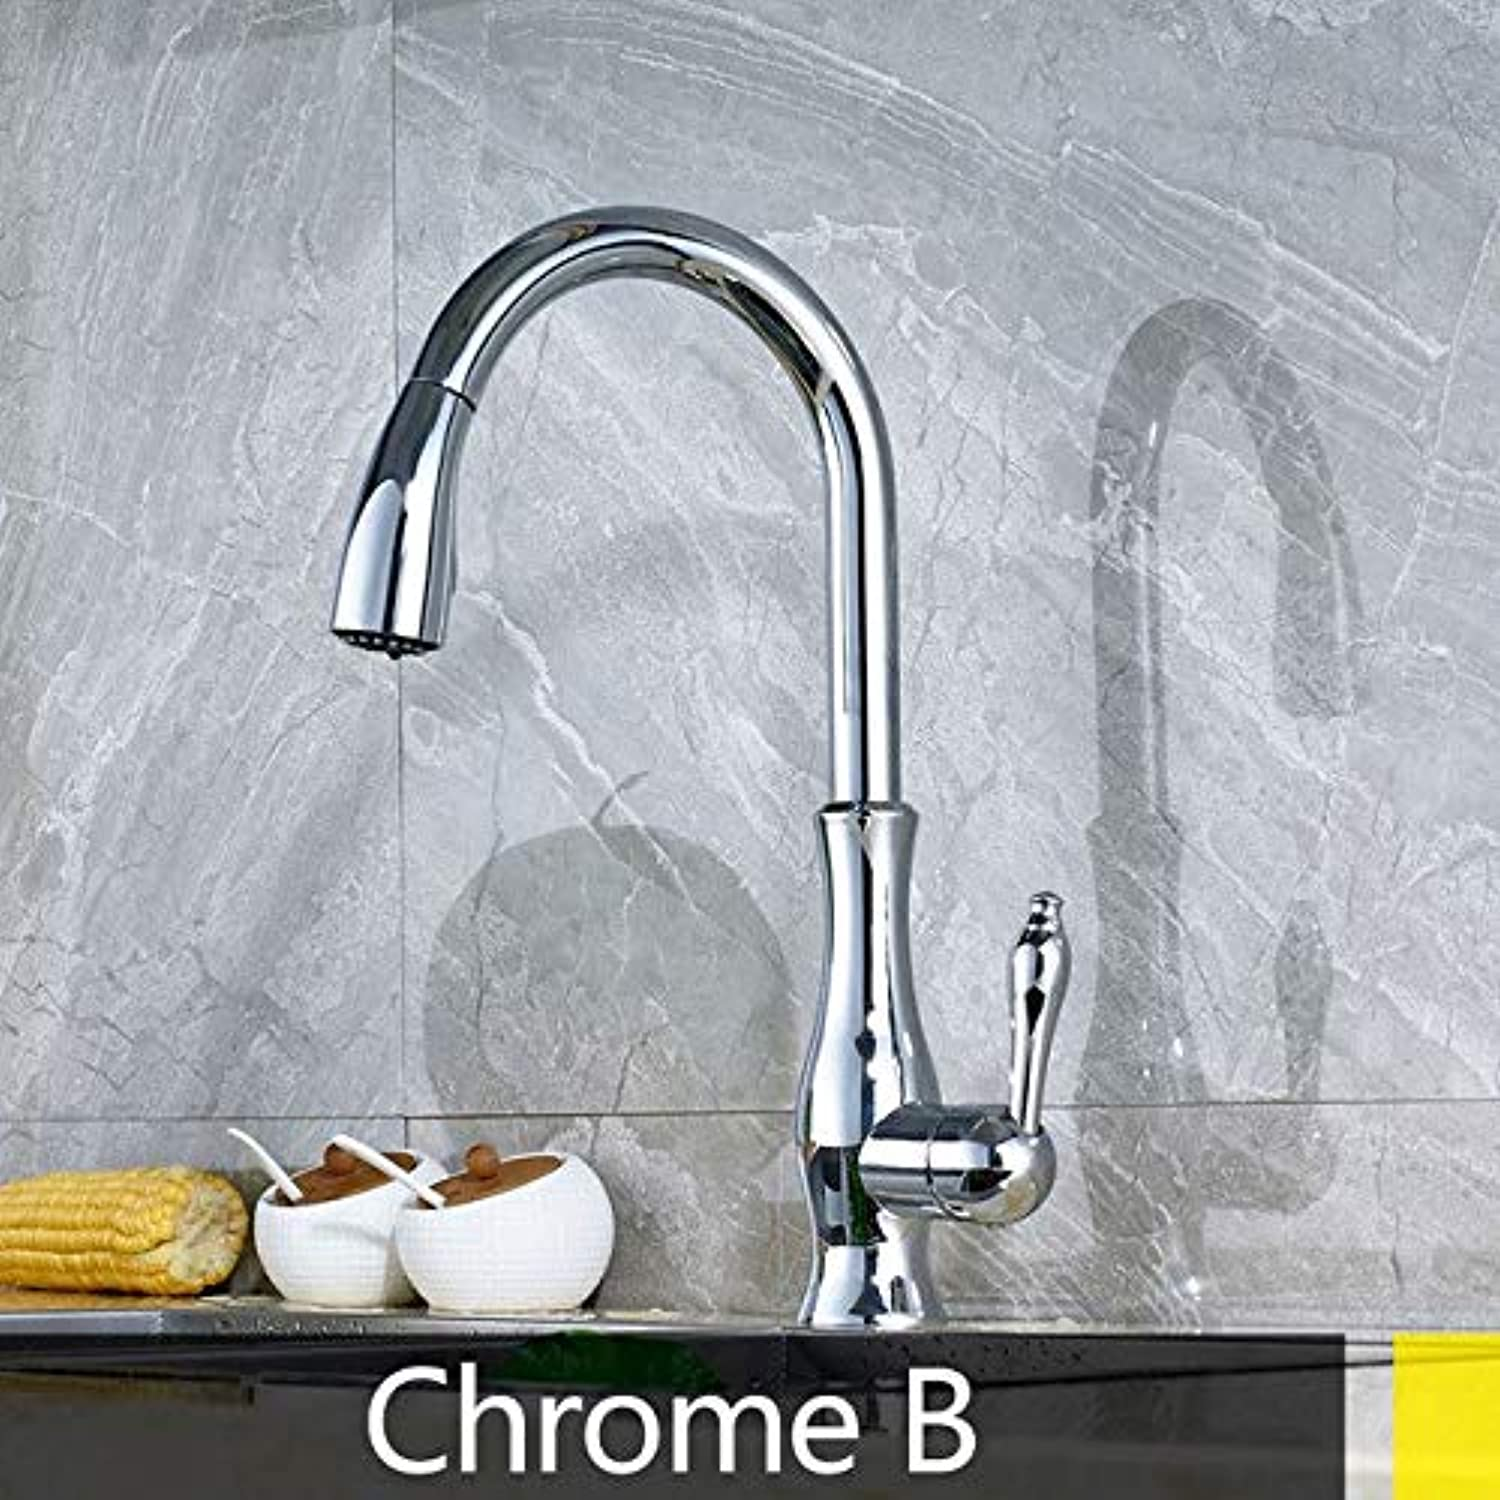 U-Enjoy Chandelier Ktichen Tap New Multiple and Top Quality color Type Hot Cold Mixer redatable Pull Out Crane 2 Function Modes Spout Sink Faucet Free Shipping [Chrome B]